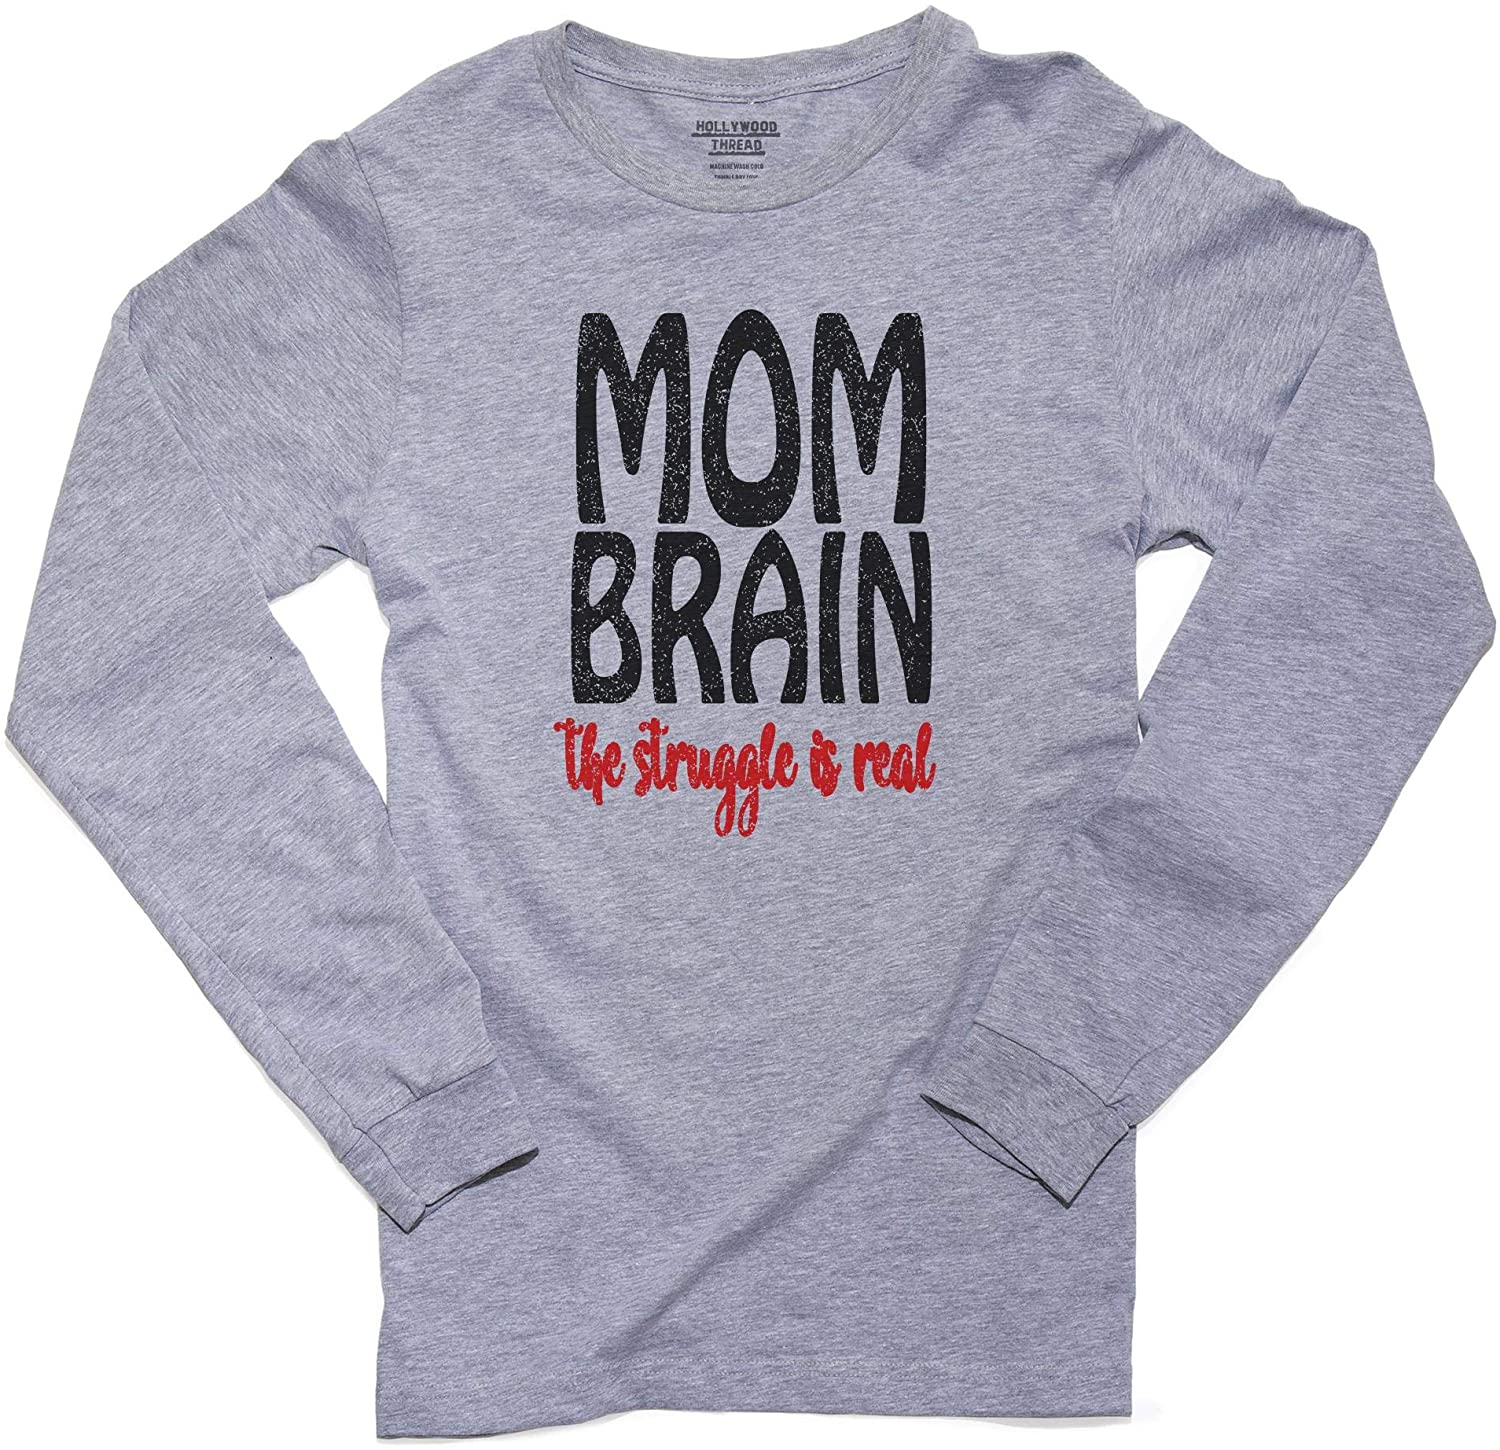 Mom Brain - The Struggle is Real - Hilarious Graphic Men's Long Sleeve T-Shirt